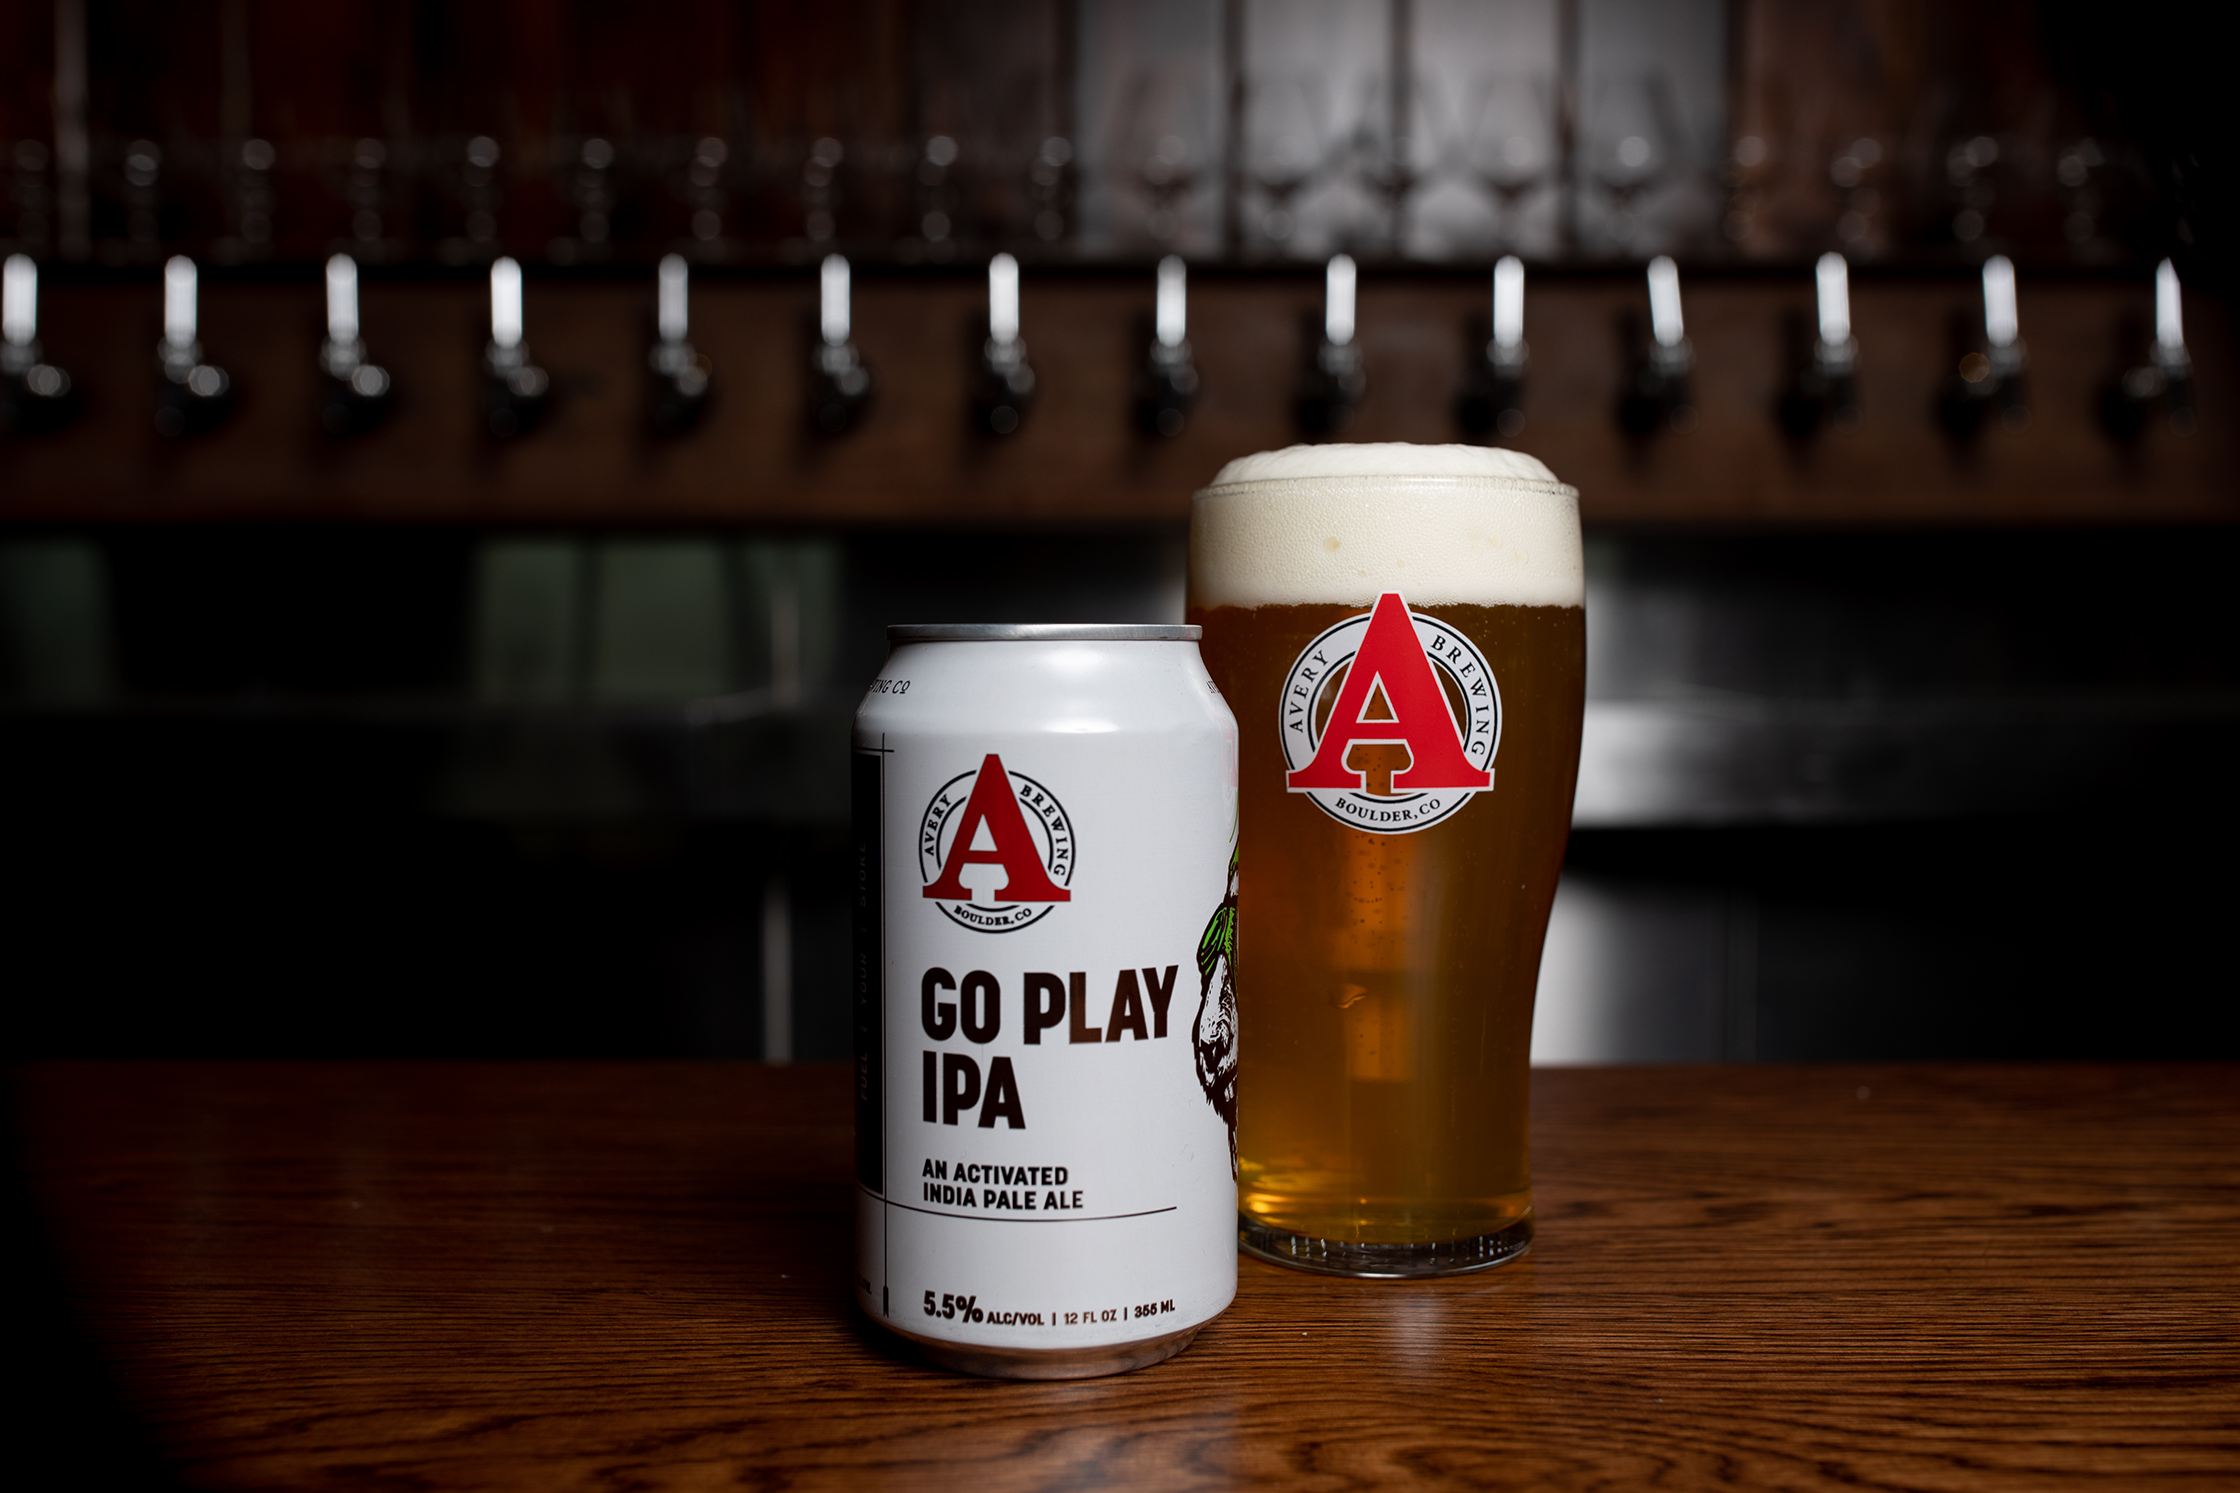 Avery Brewing Company's Go Play IPA // Photo courtesy Avery Brewing Company